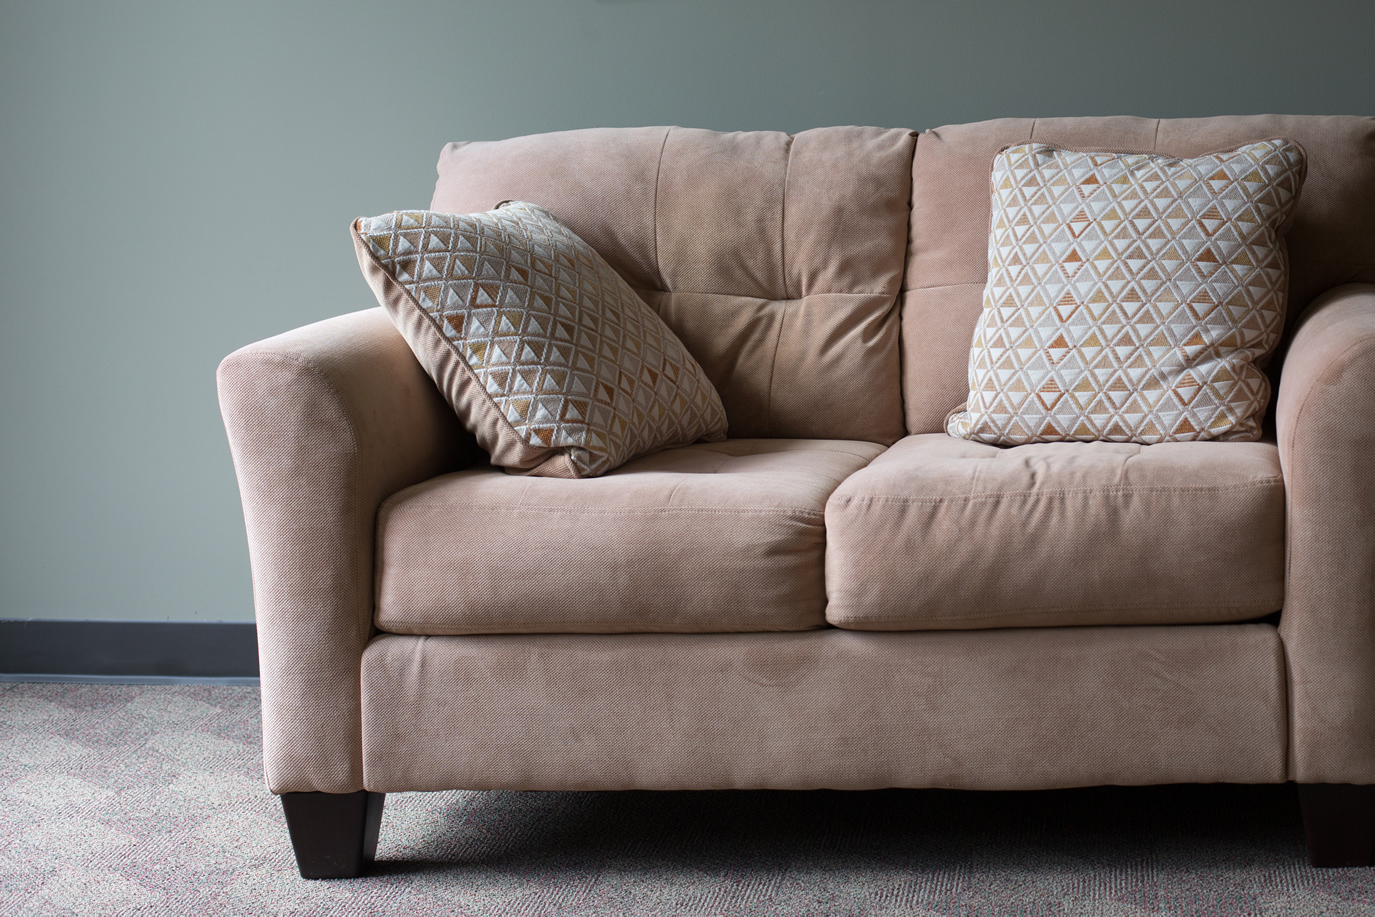 upholstery-couch